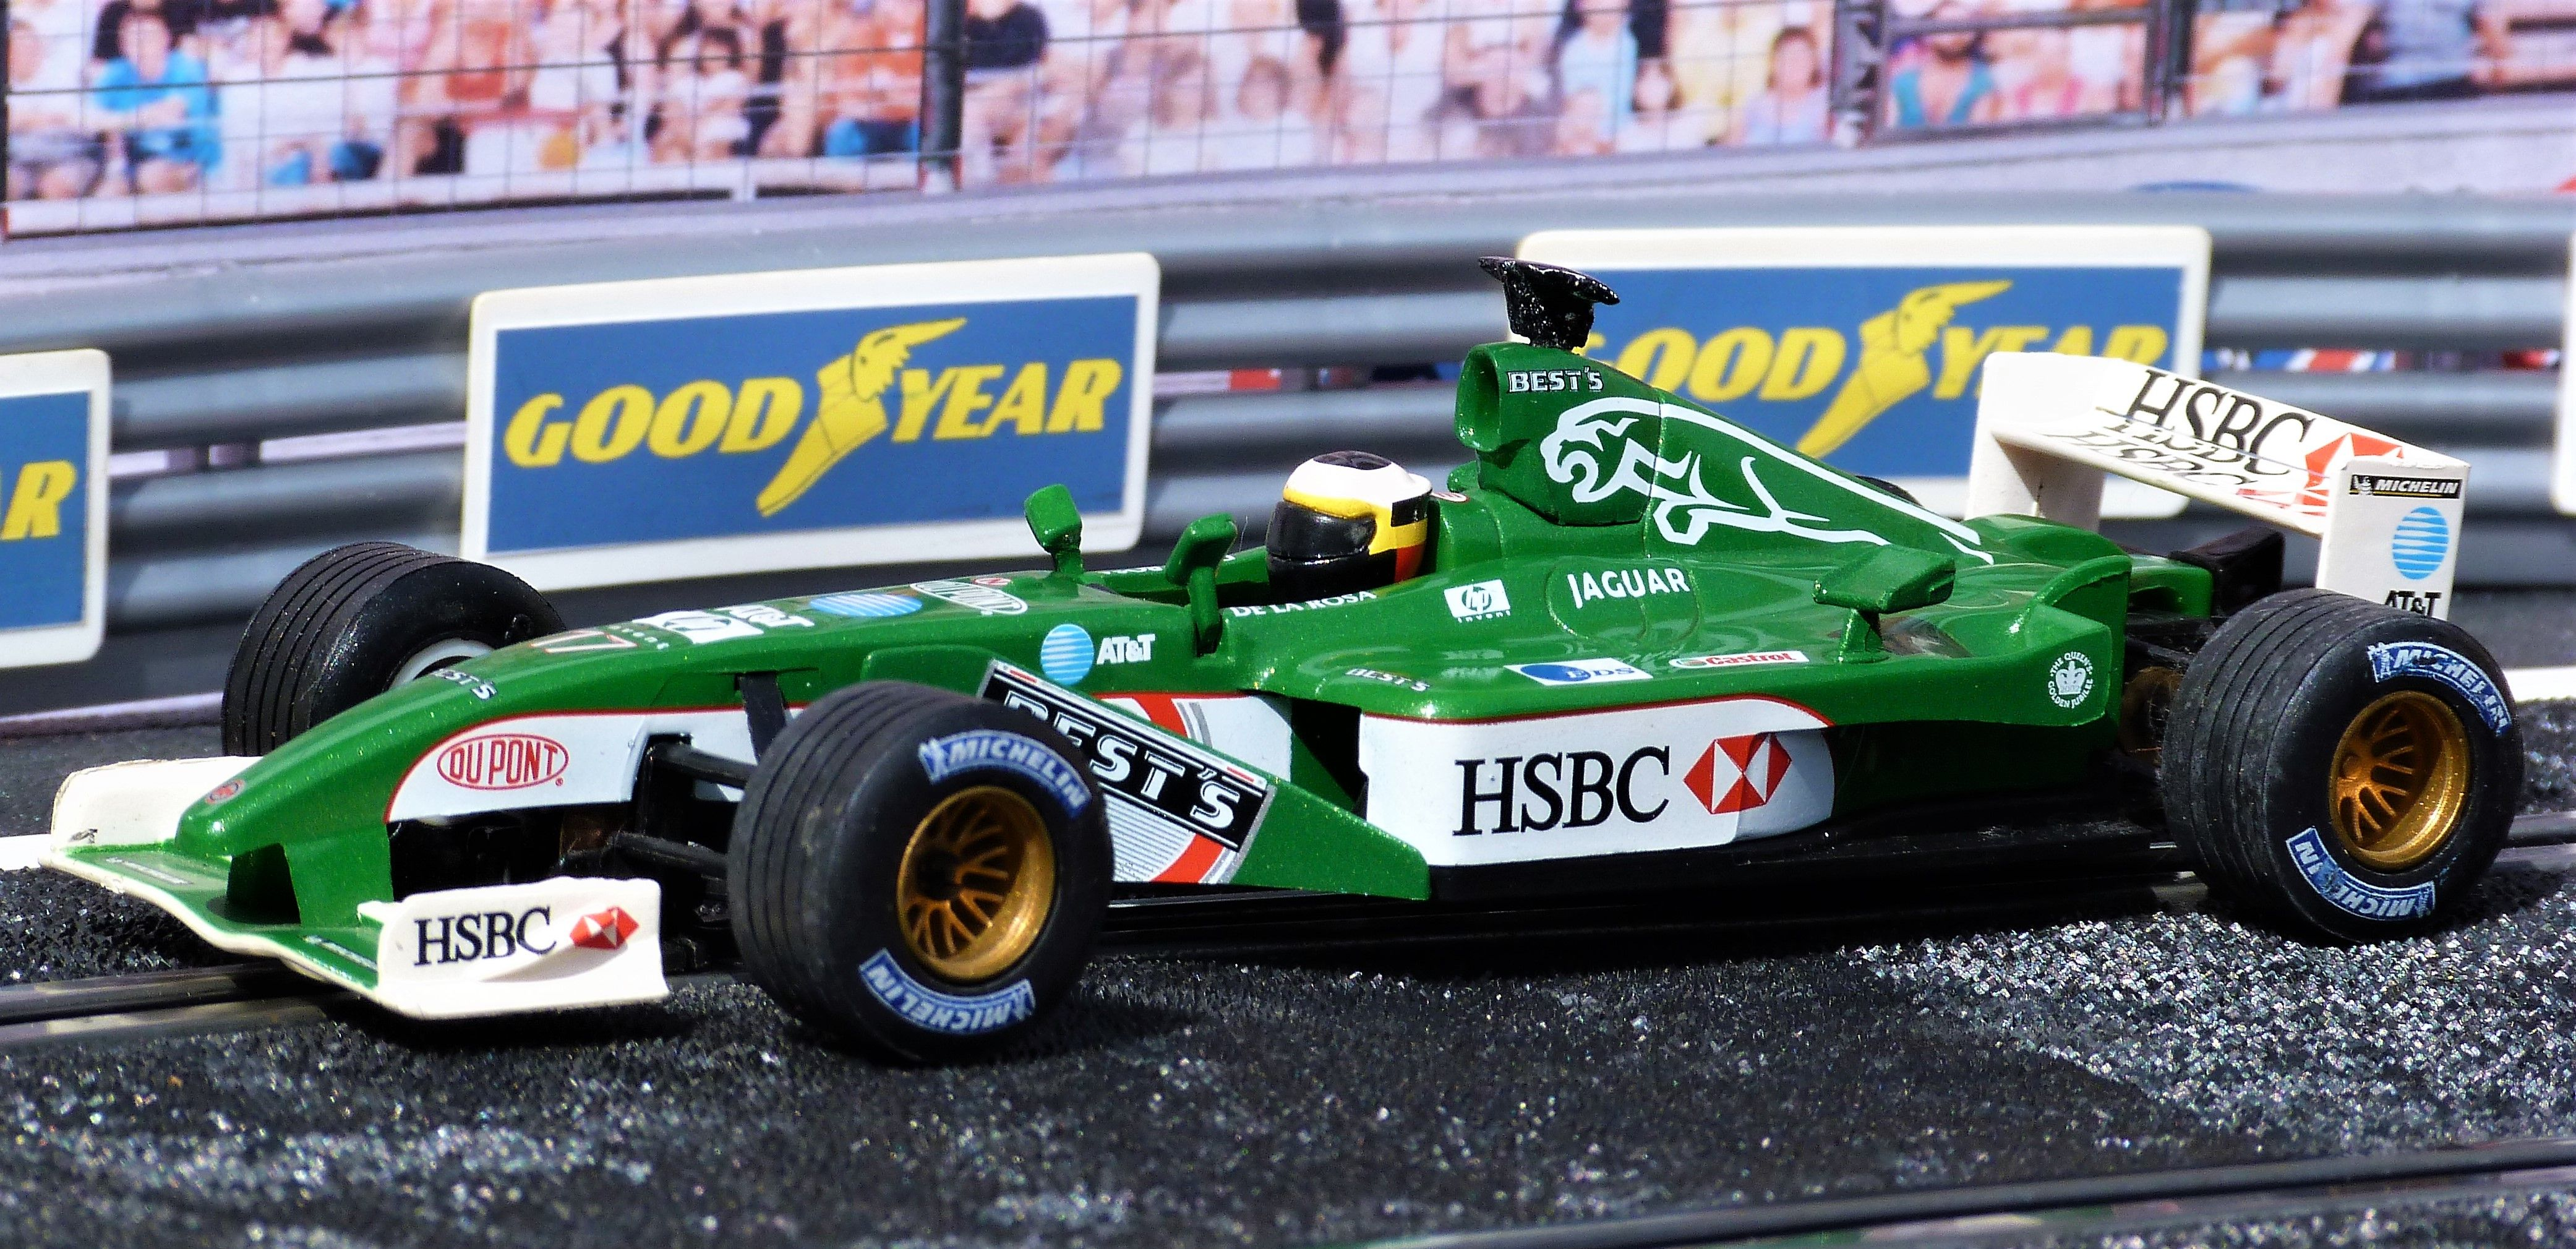 Scalextric Tecnitoys 61140 Jaguar R3 F1 2002 F1 Season Pedro Martínez De La Rosa Slot Slotcar Jaguar Pedrodelarosa Slot Cars Car Collection Toy Car